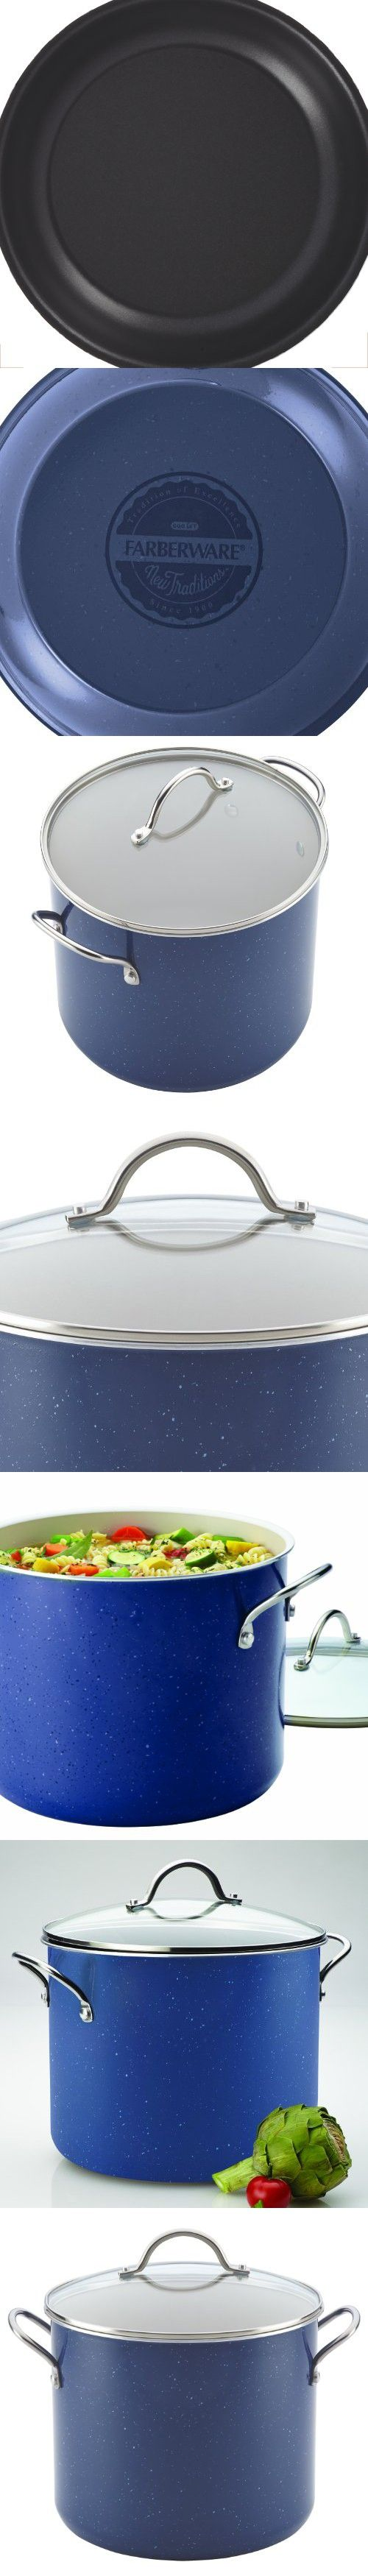 Farberware New Traditions Speckled Aluminum Nonstick 12-Quart Covered Stockpot, Blue